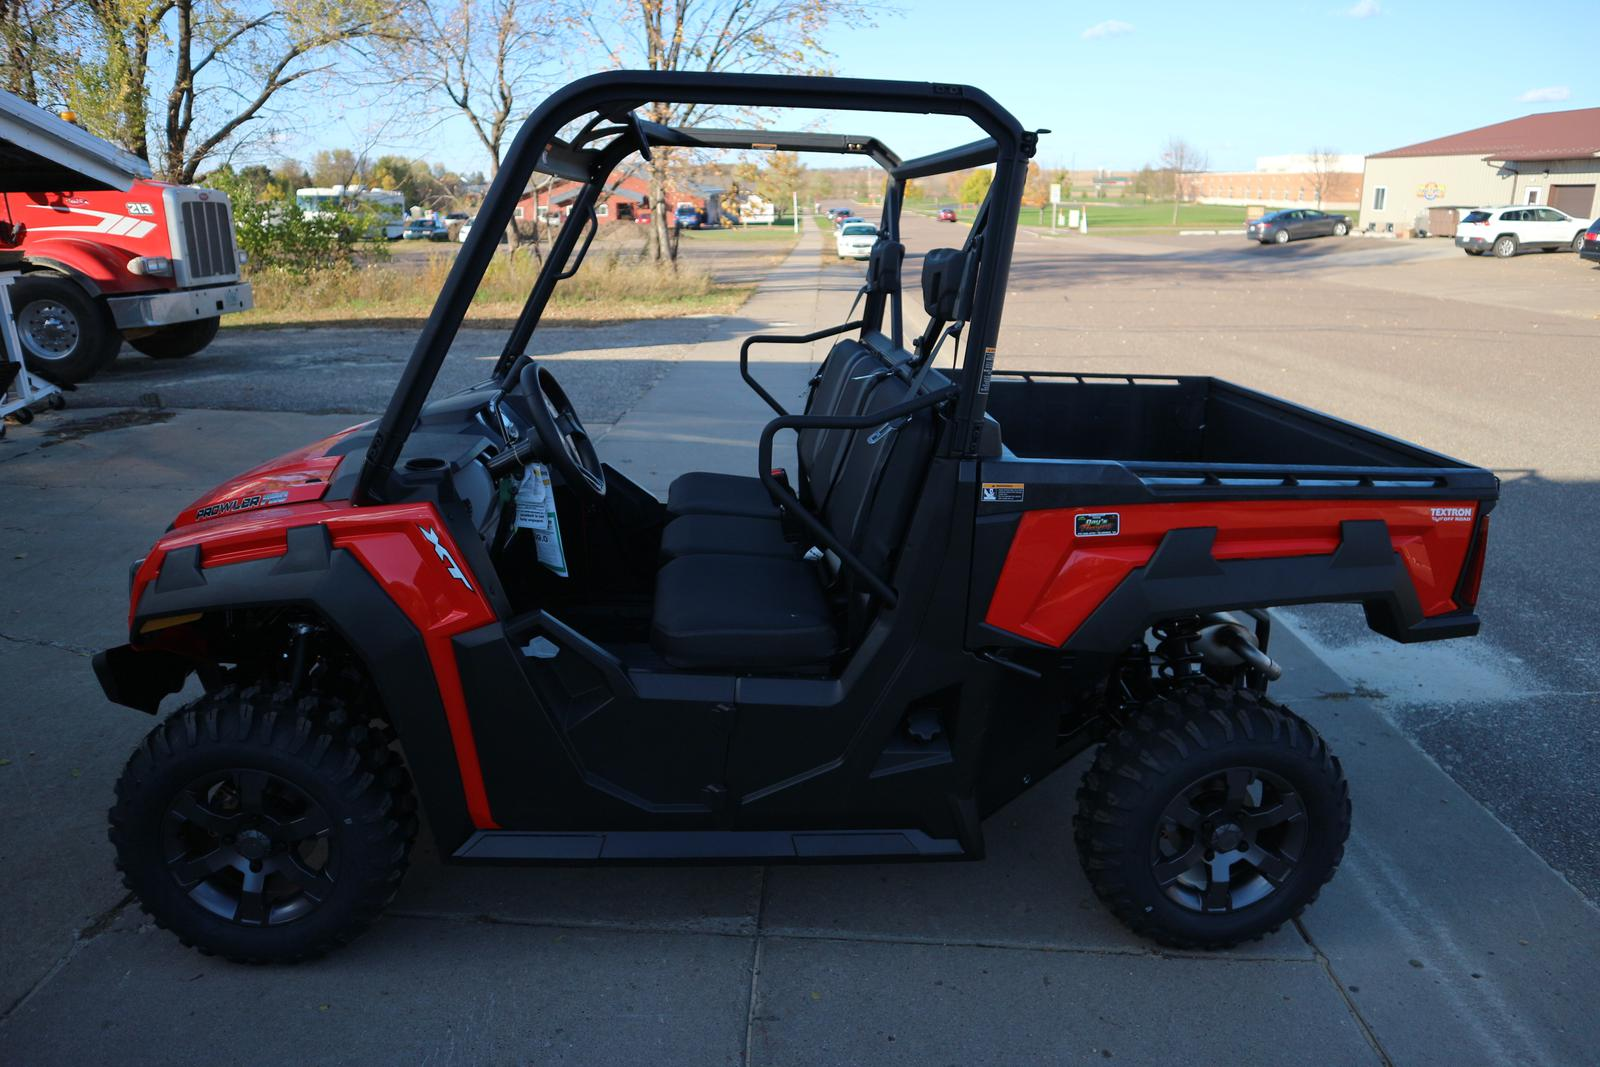 Inventory from Arctic Cat Side x Side and Cub Cadet Day's